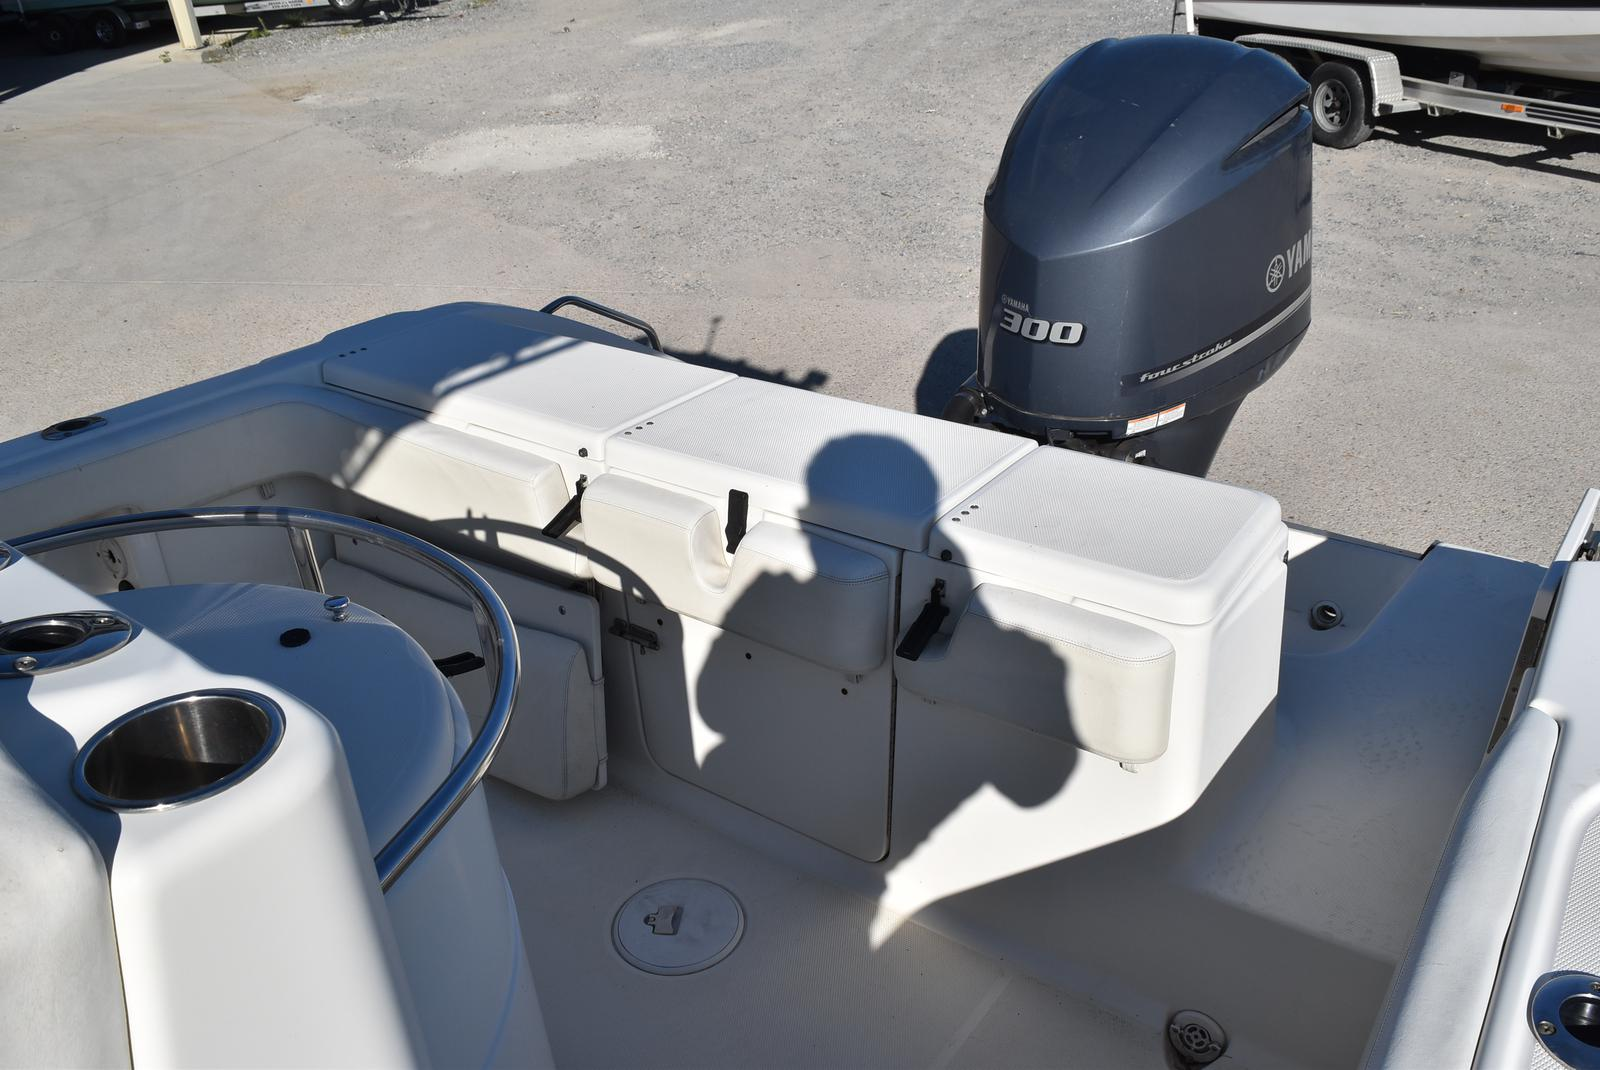 2006 Triton boat for sale, model of the boat is 2486 & Image # 12 of 24